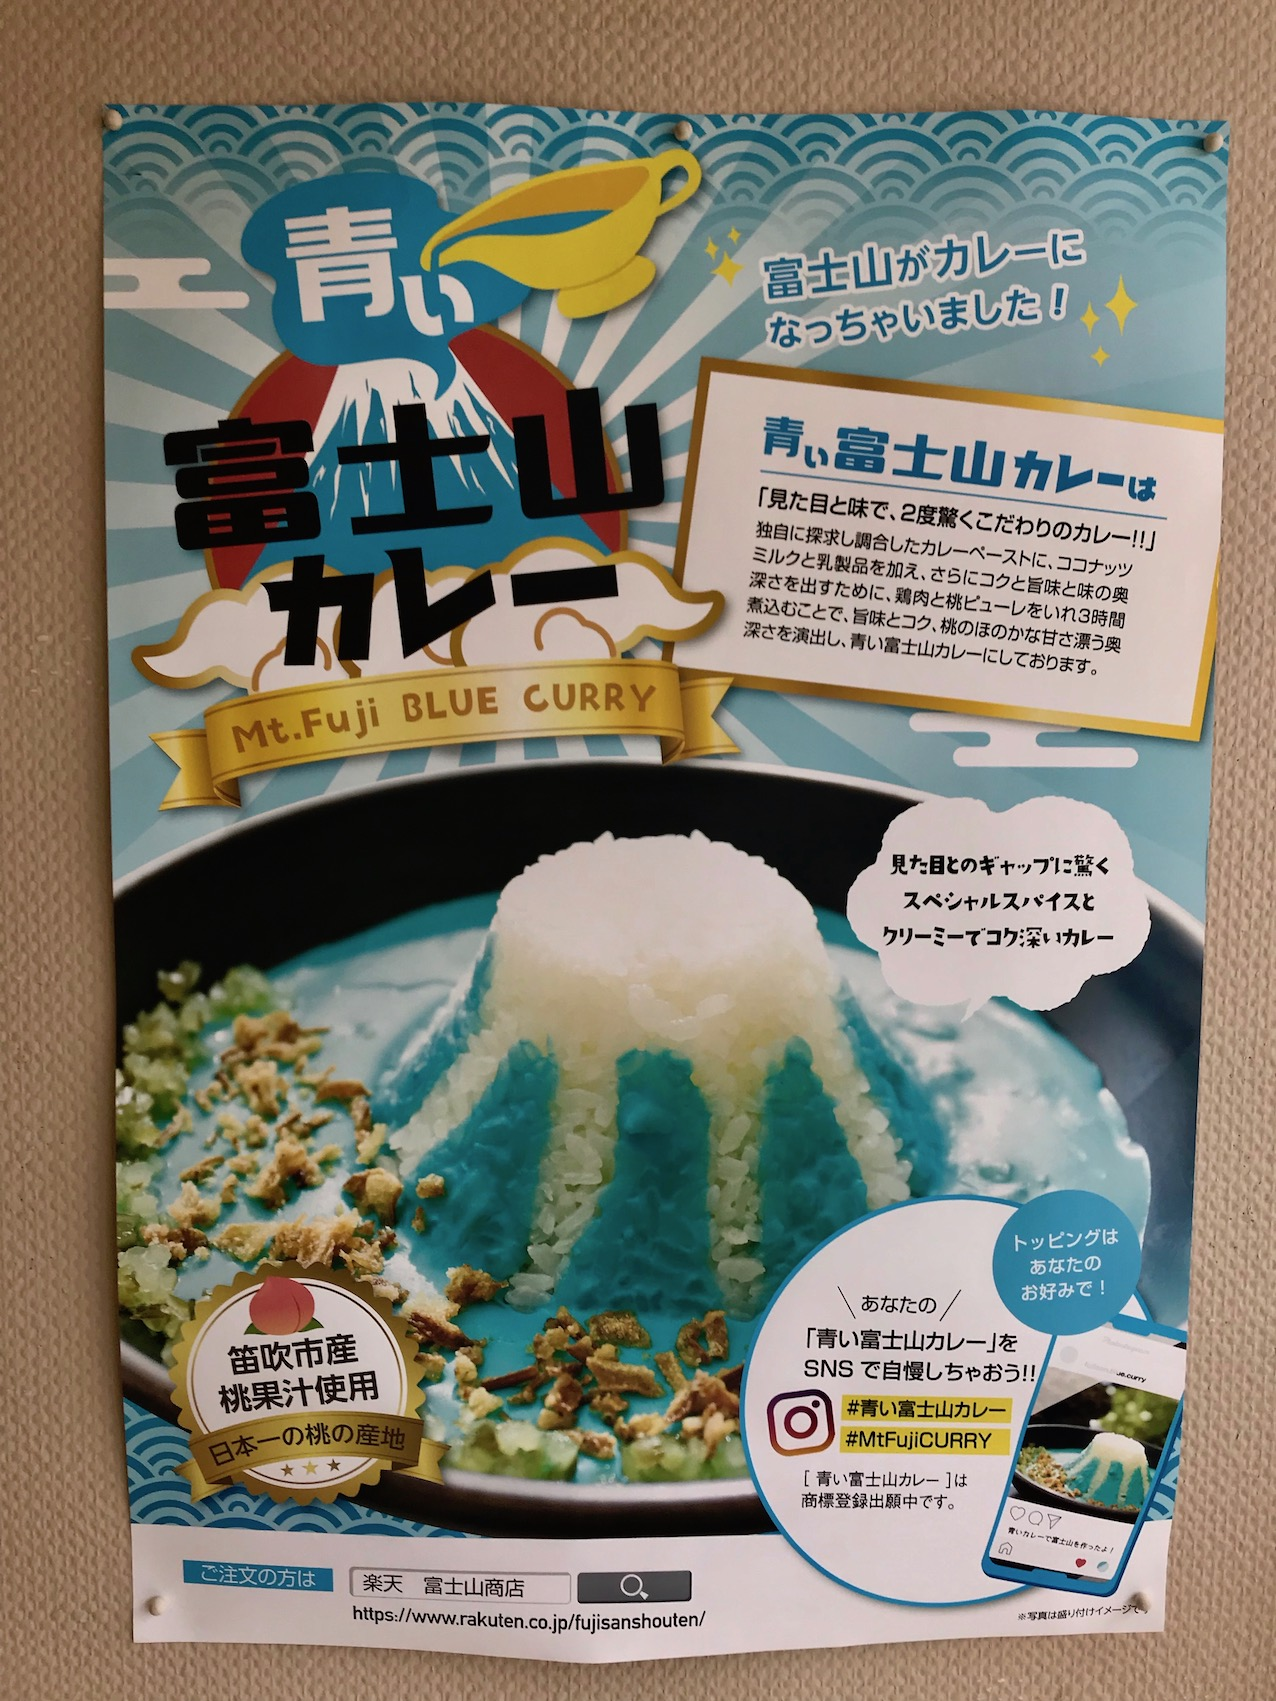 Mount Fuji Blue Curry Fujisan World Heritage Center Japan.